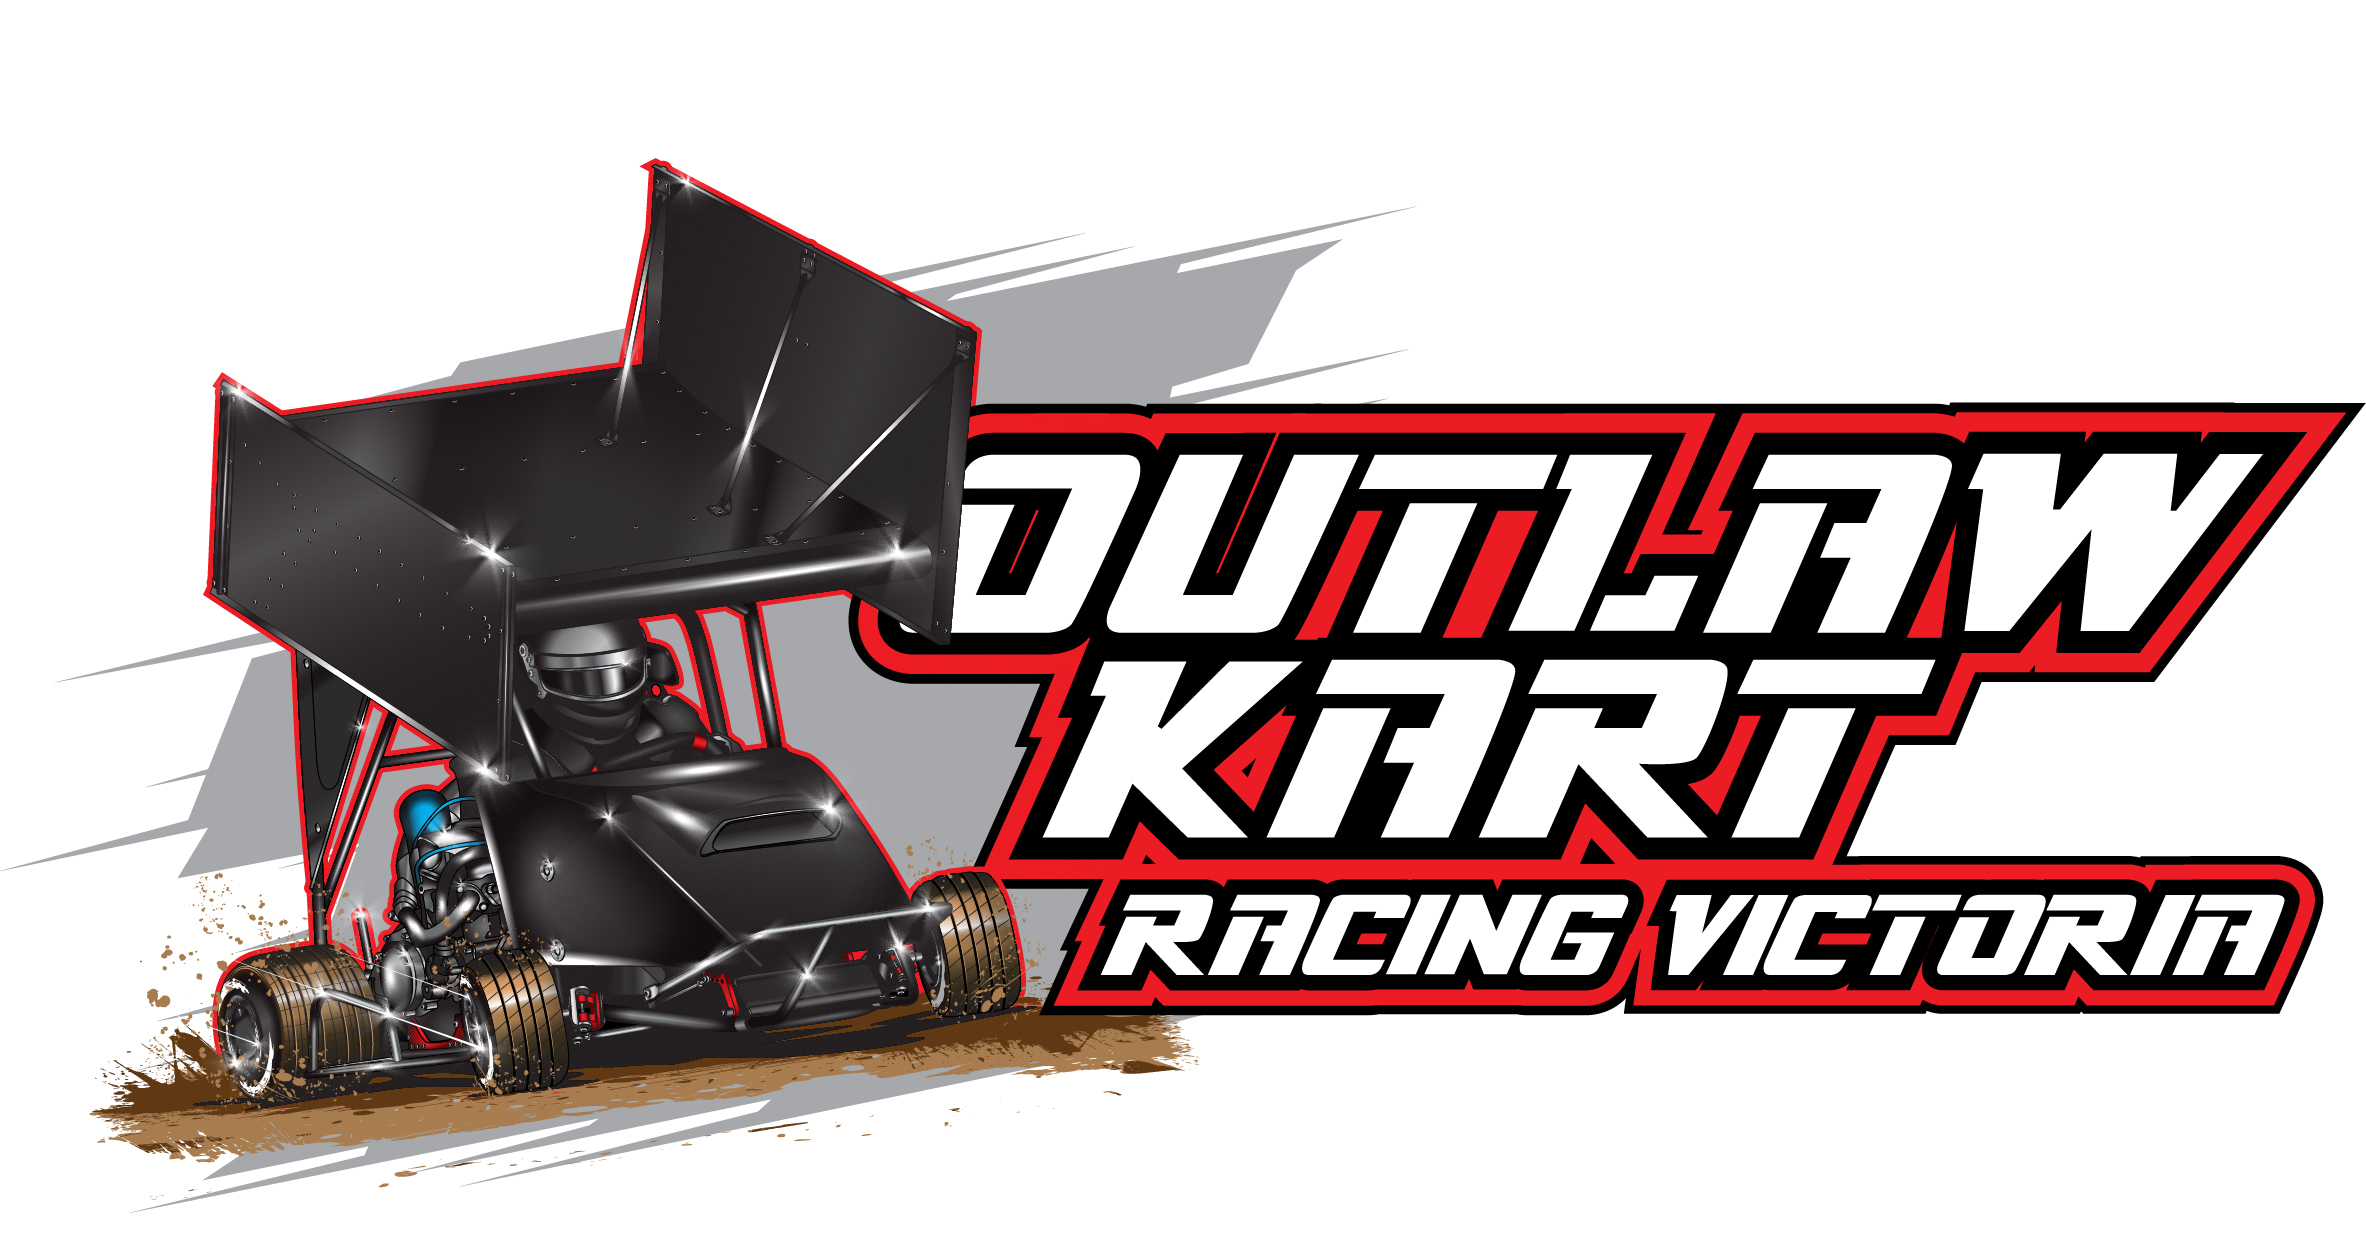 Outlaw Kart Racing Victoria